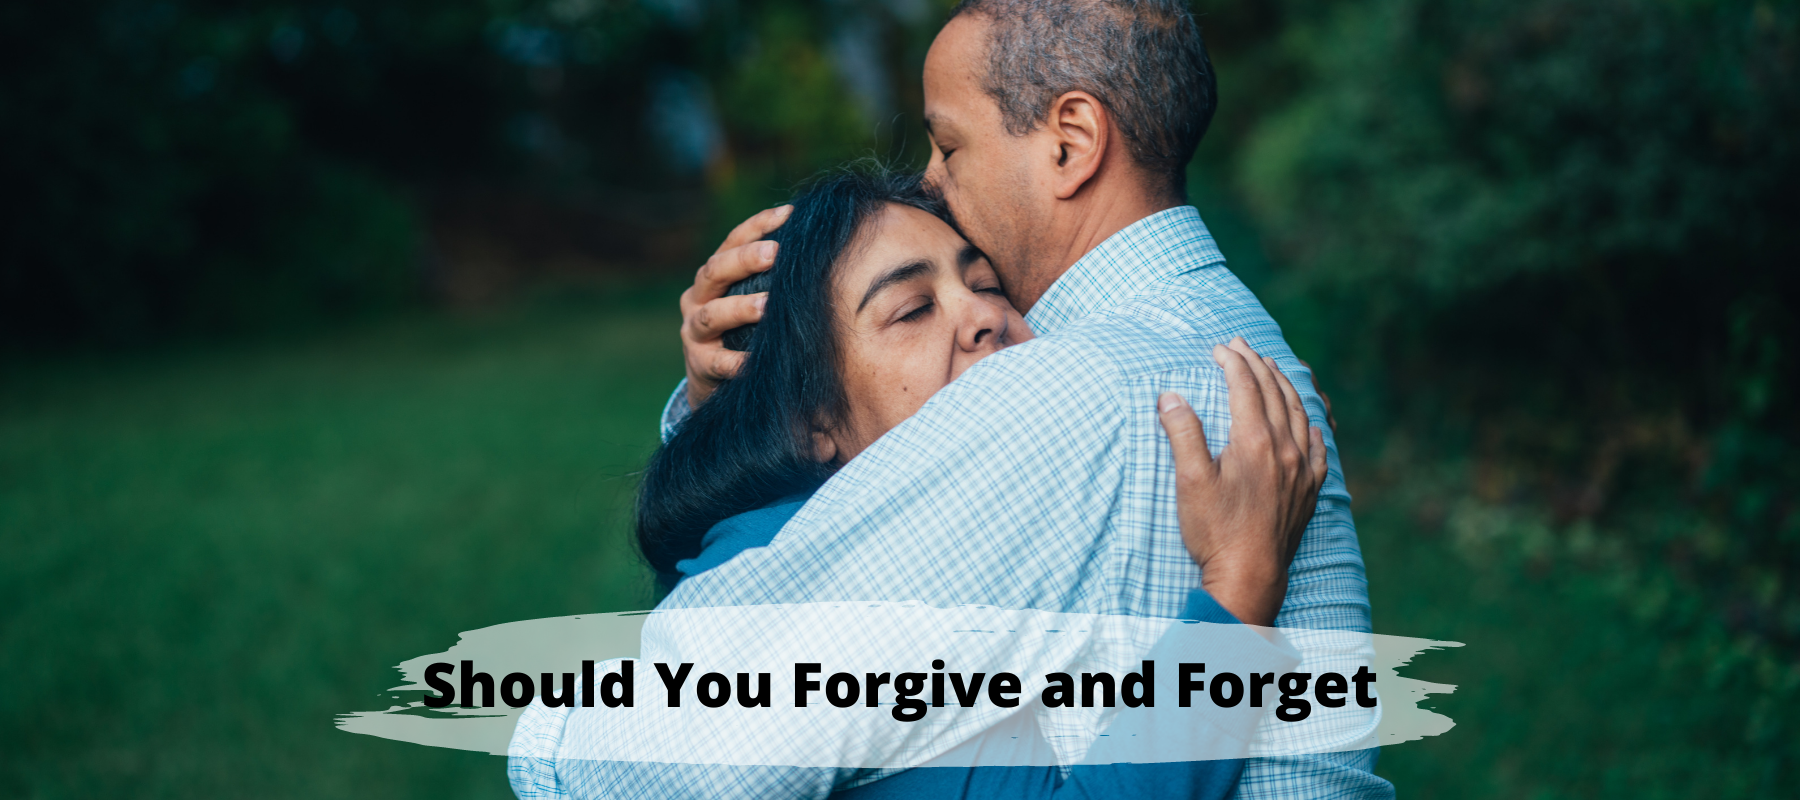 should-you-forgive-and-forget